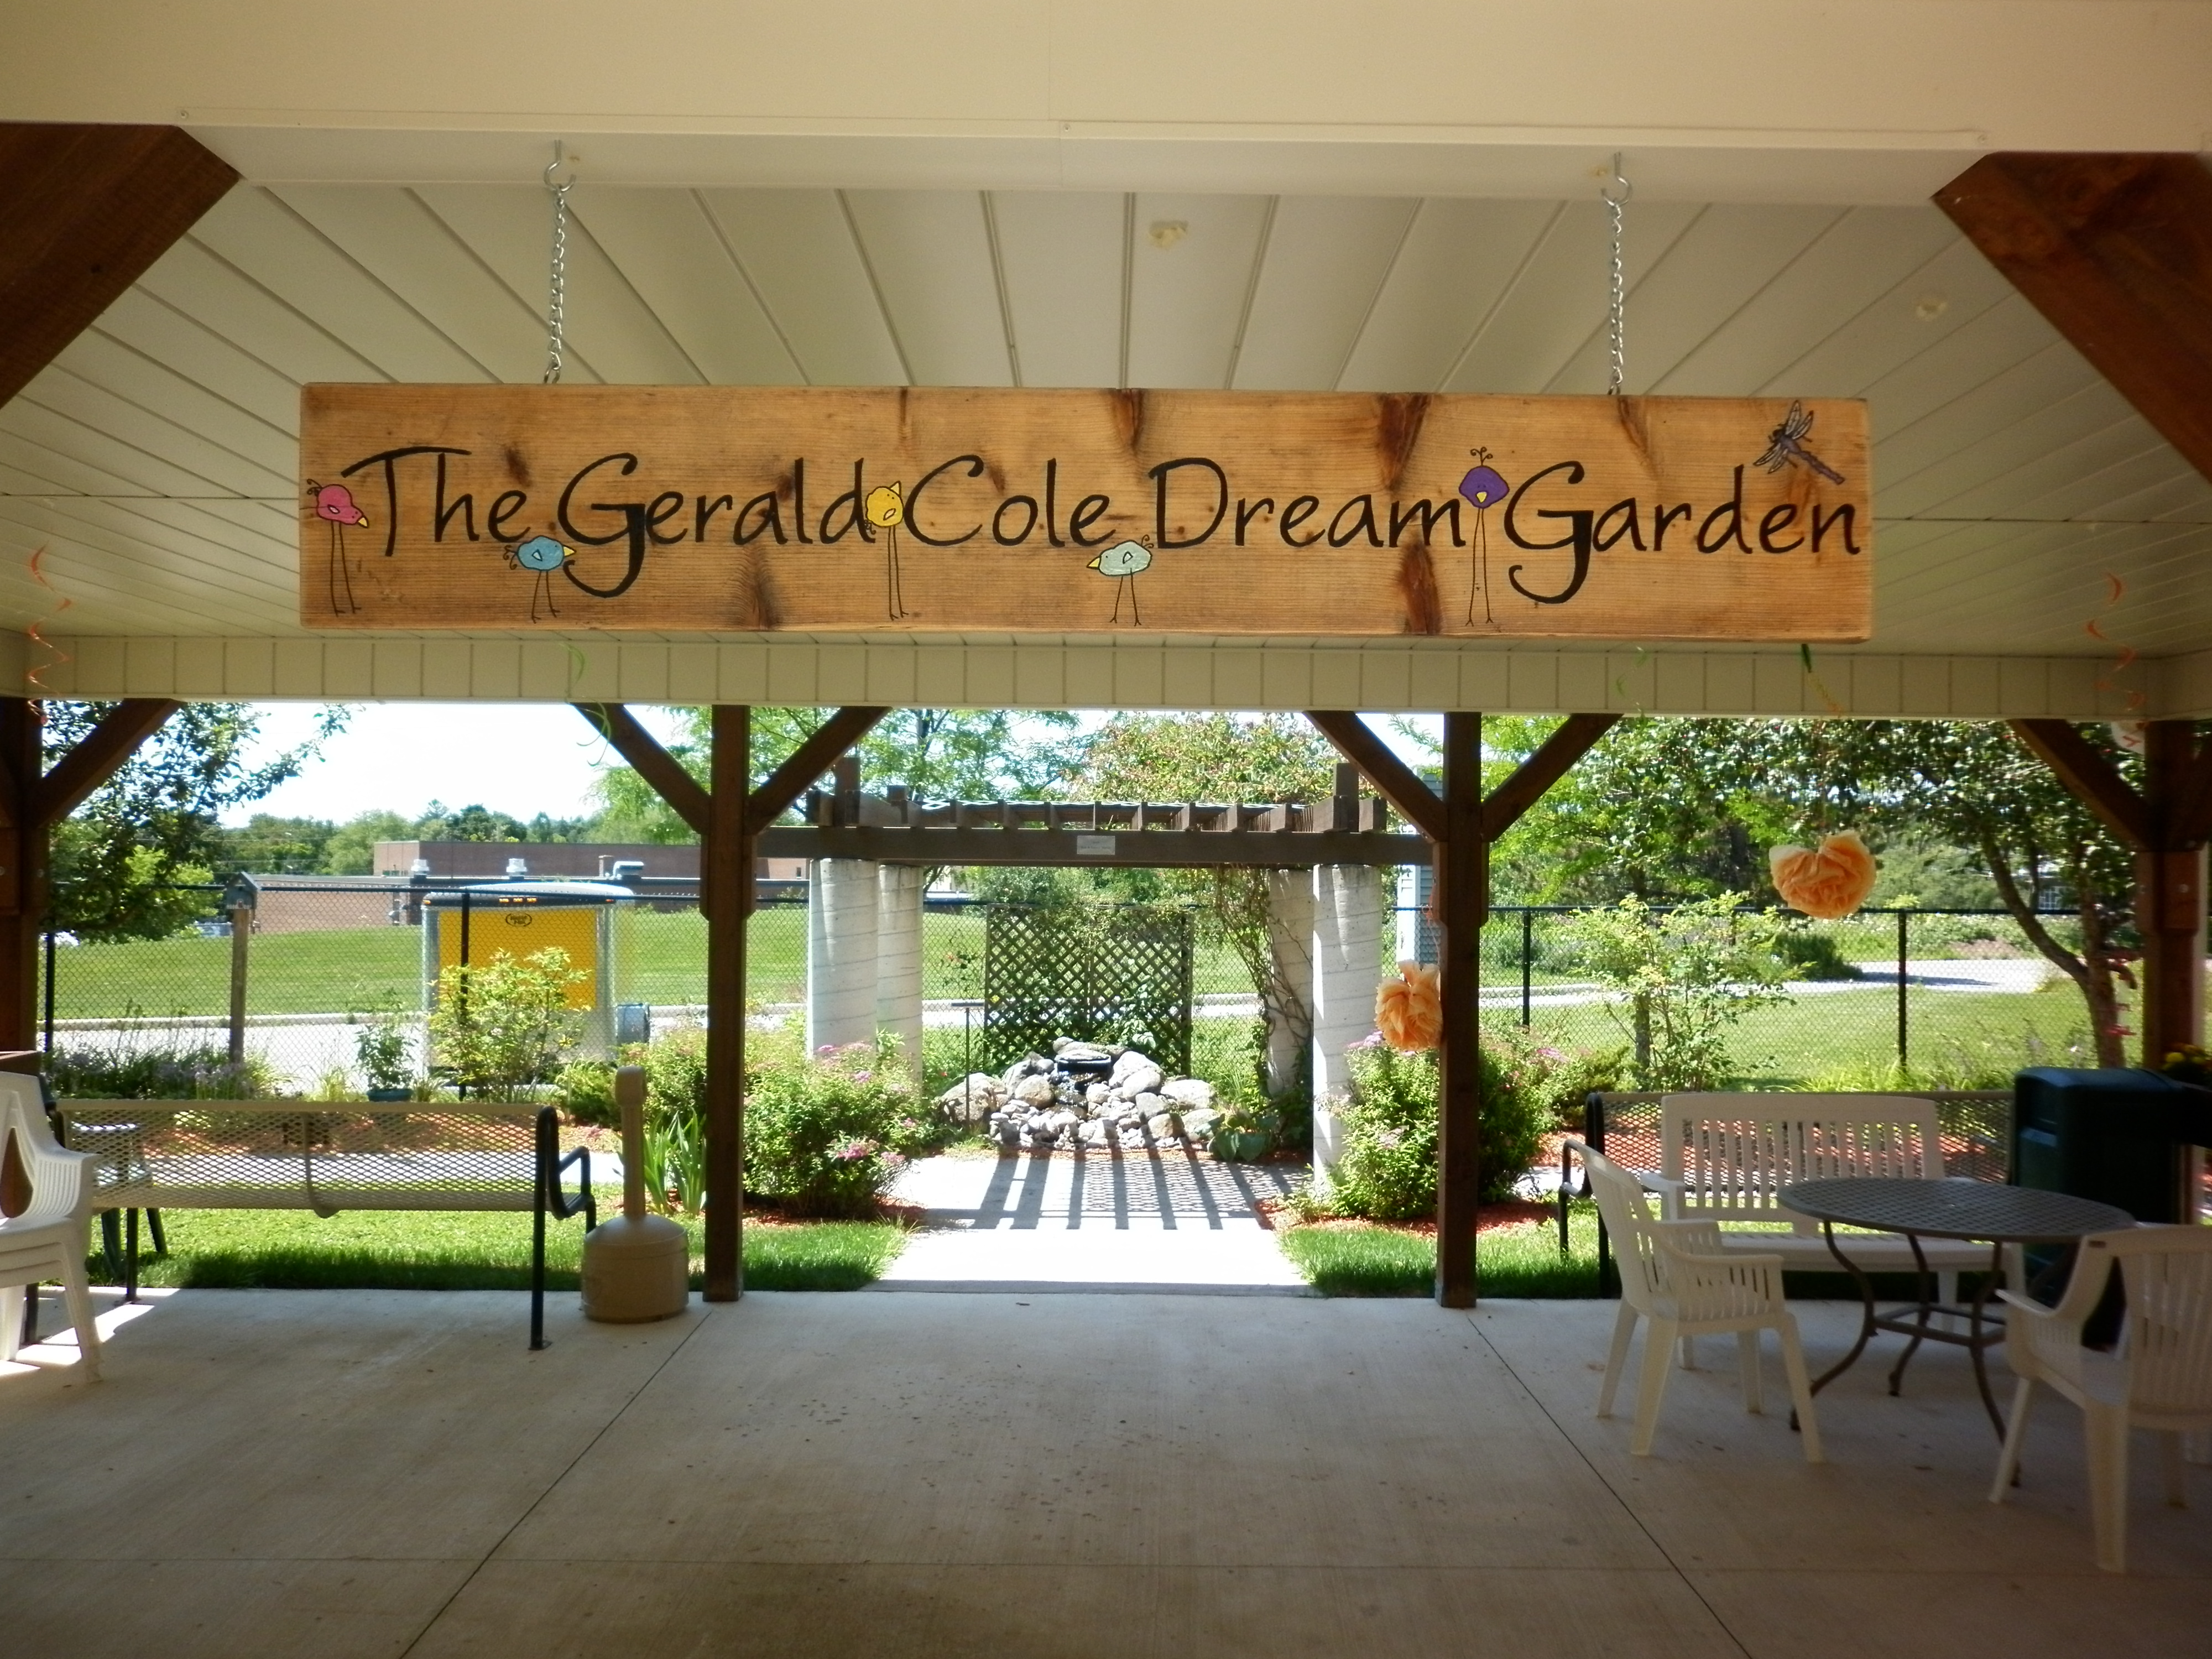 The Gerald Cole Dream Garden